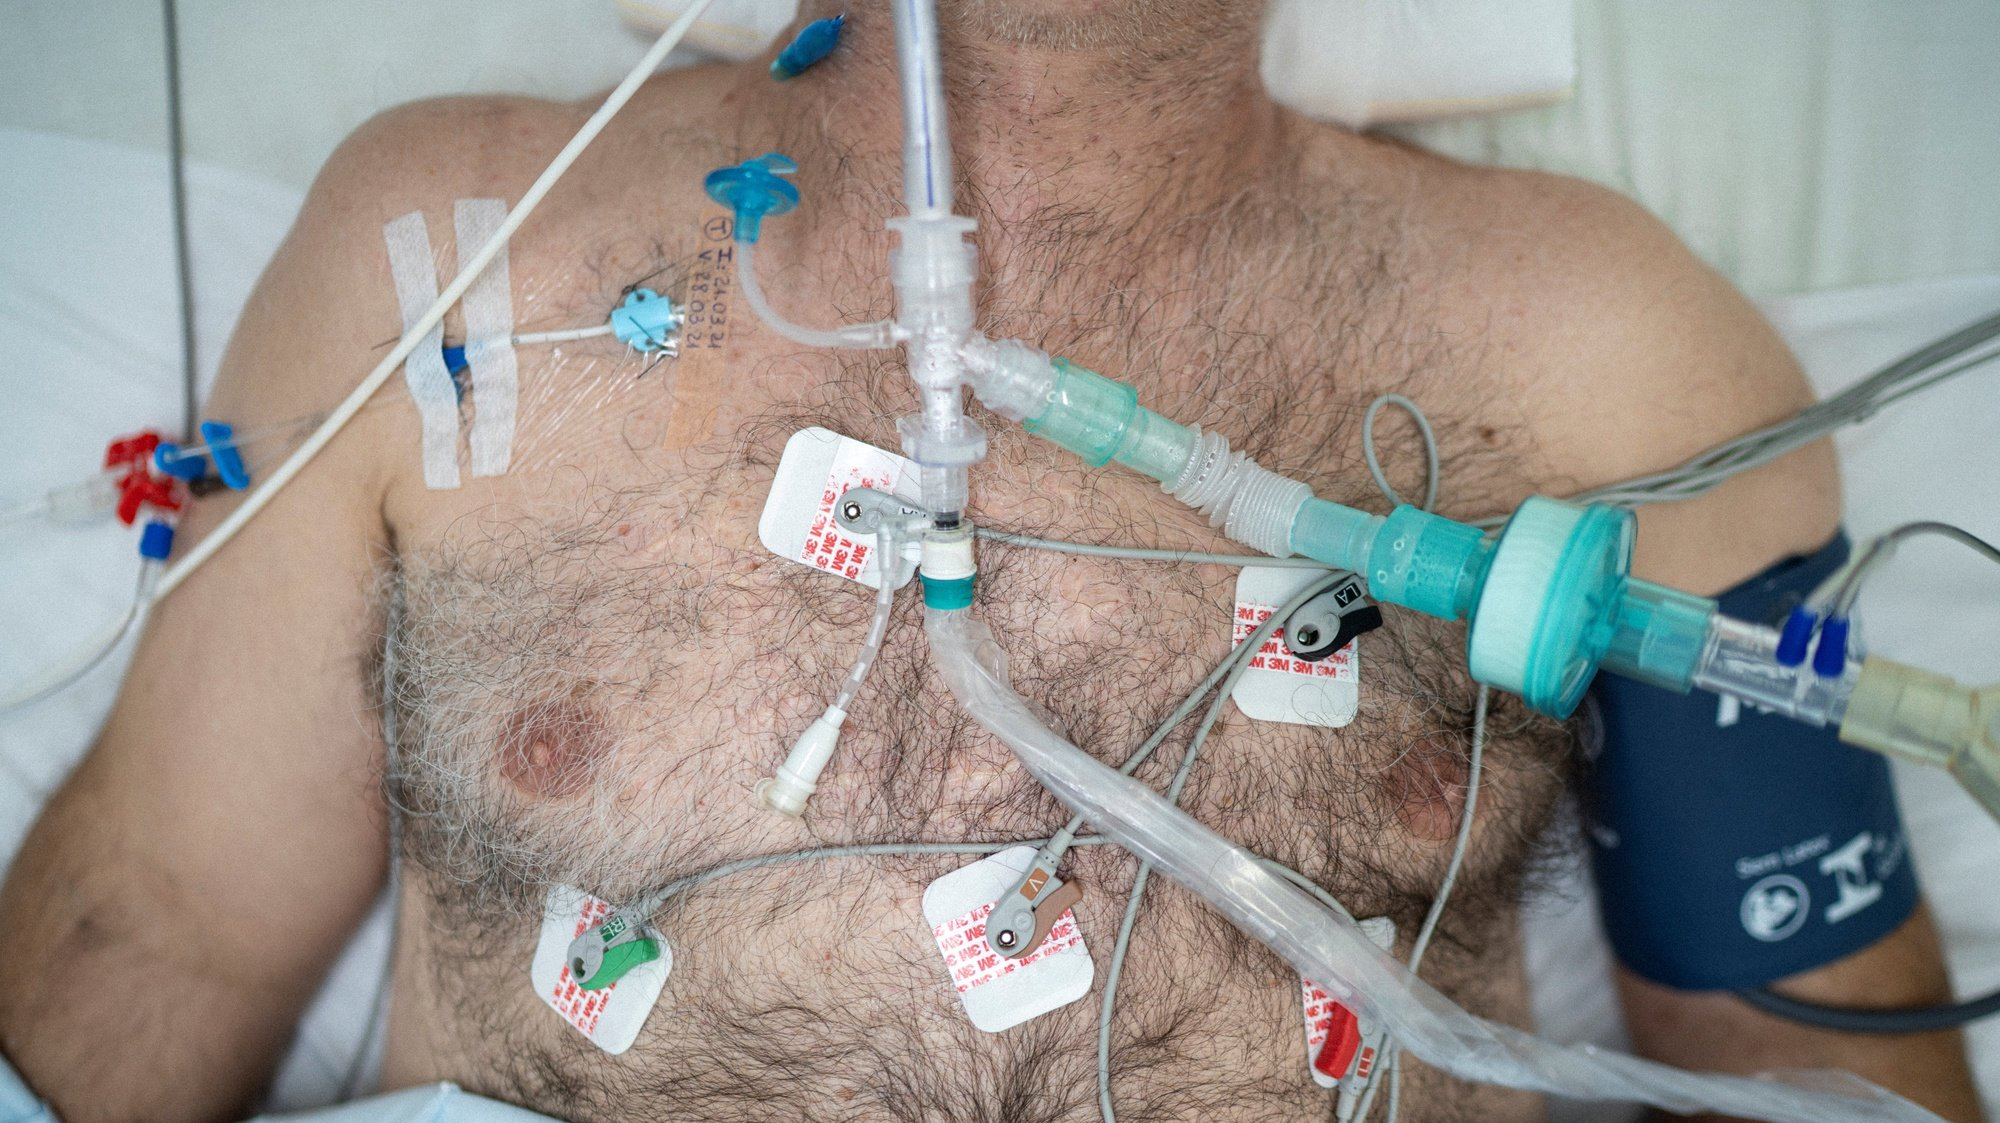 epa09094352 The chest of a patient who in turn is intubated in the Centenario hospital, in São Leopoldo, Rio Grande do Sul, Brazil, 23 March 2021 (Issued 24 March 2021). The country will possibly reach the figure of 300,000 deaths on 24 March from causes related to the coronavirus. São Leopoldo, a city in the Porto Alegre metropolitan region, has just over 230,000 inhabitants and a single municipal hospital, with 18 beds to provide intensive care to COVID-19 patients.  EPA/Daniel Marenco